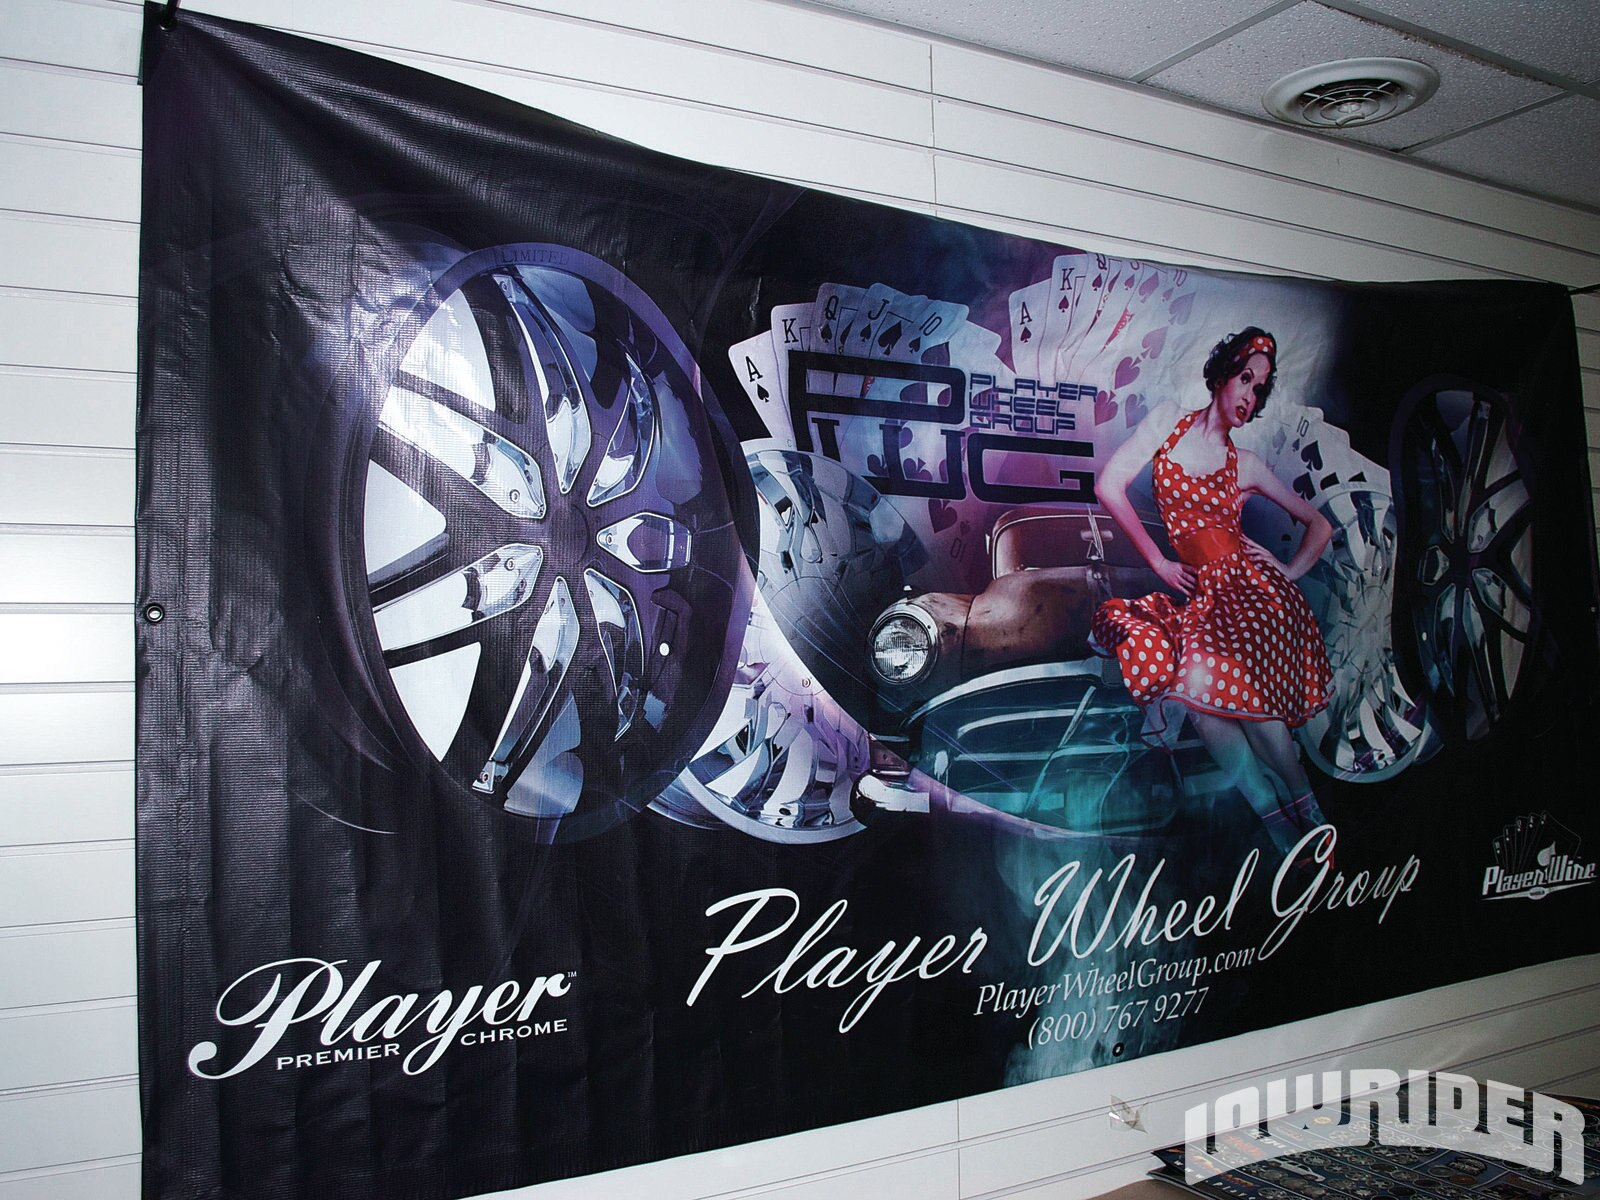 1207-lrmp-01-o-player-wheel-group-banner1